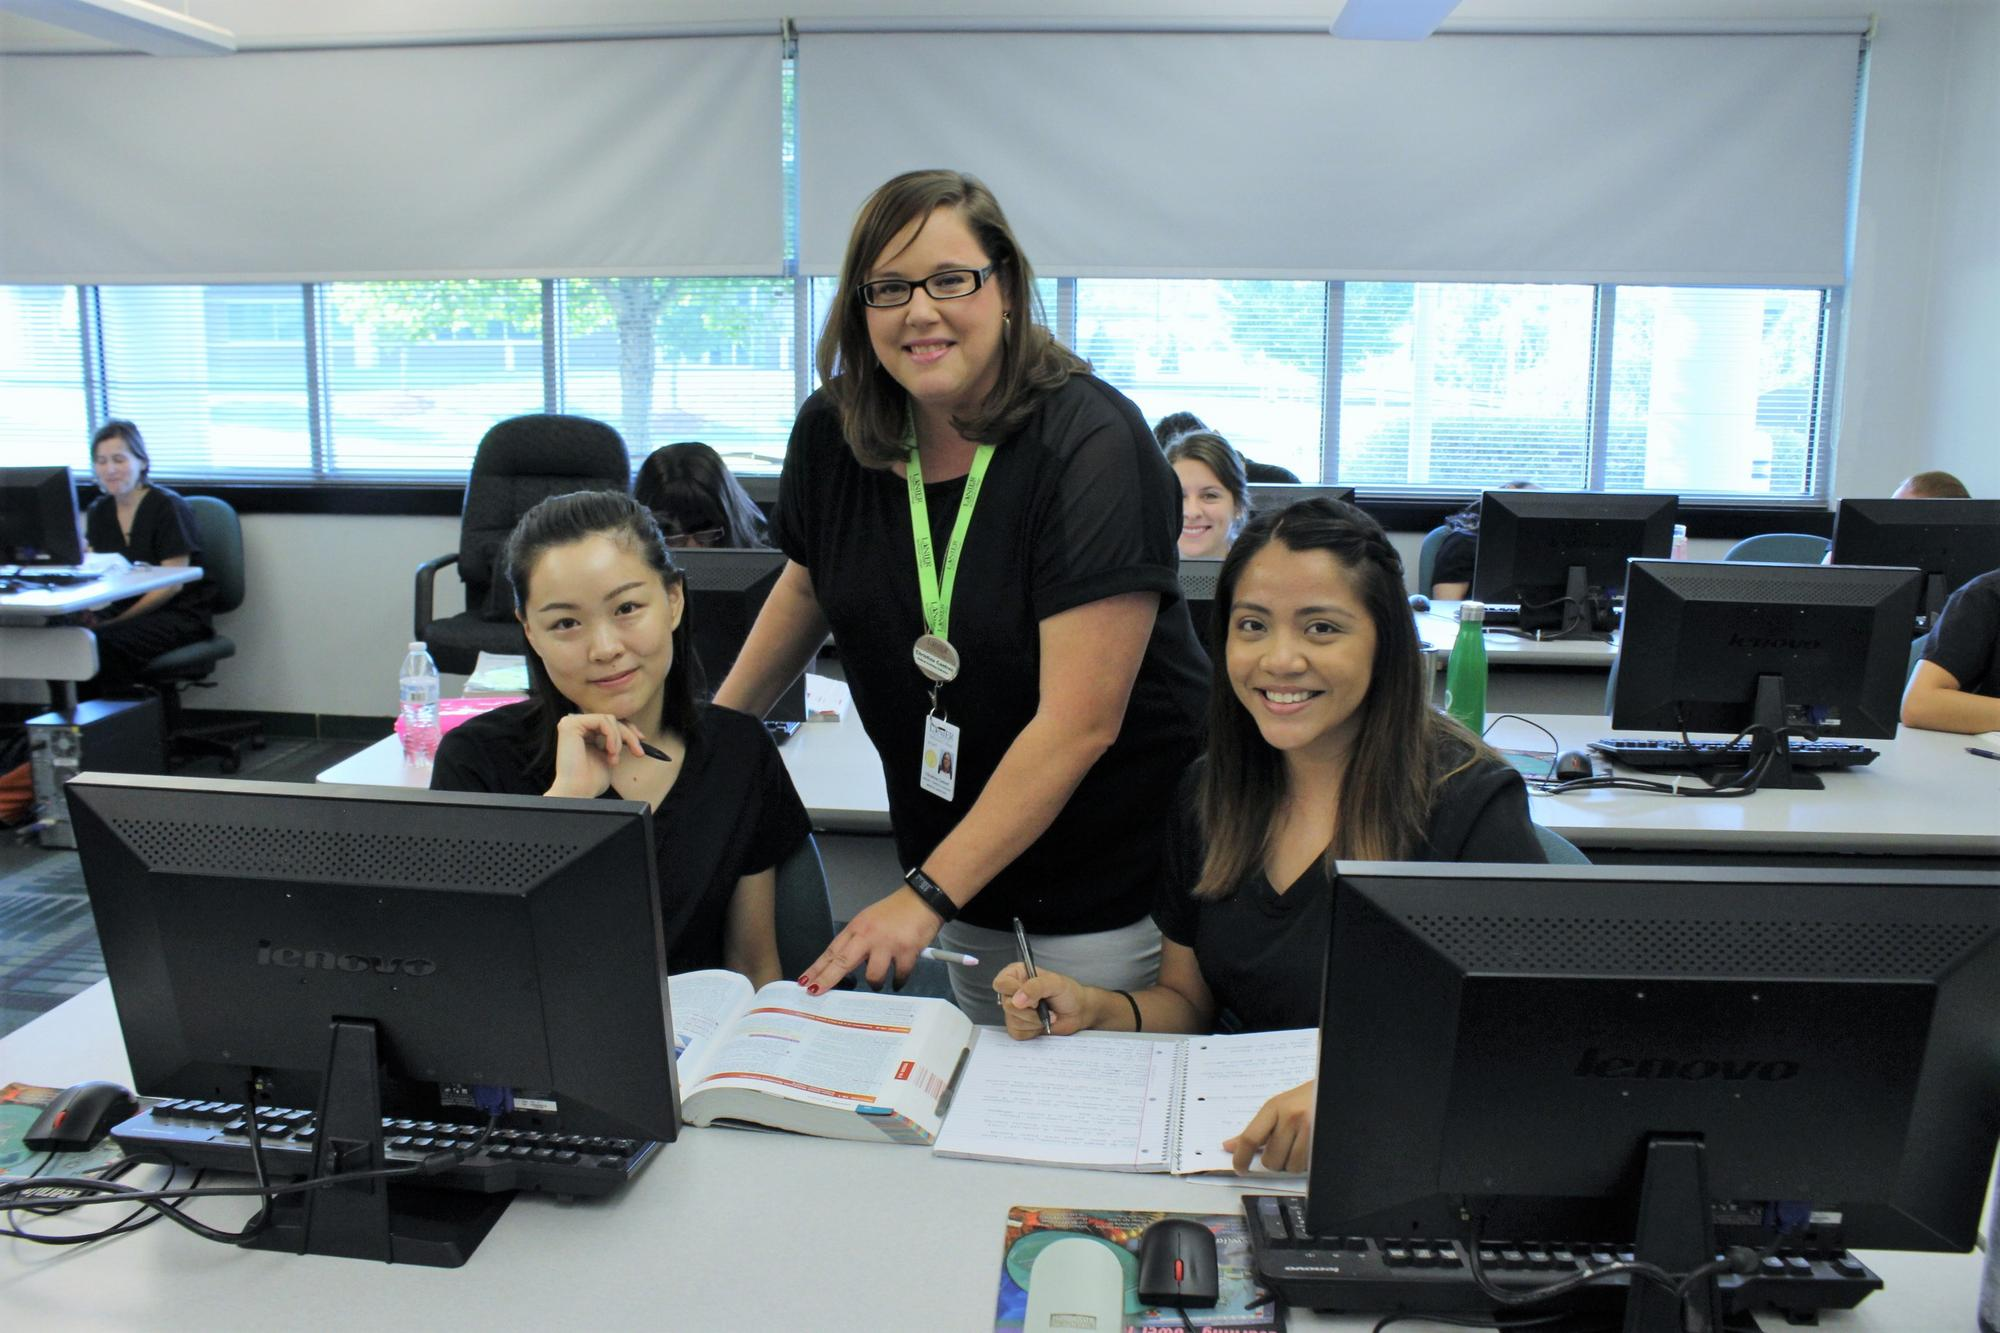 Instructor assisting two female students in computer lab